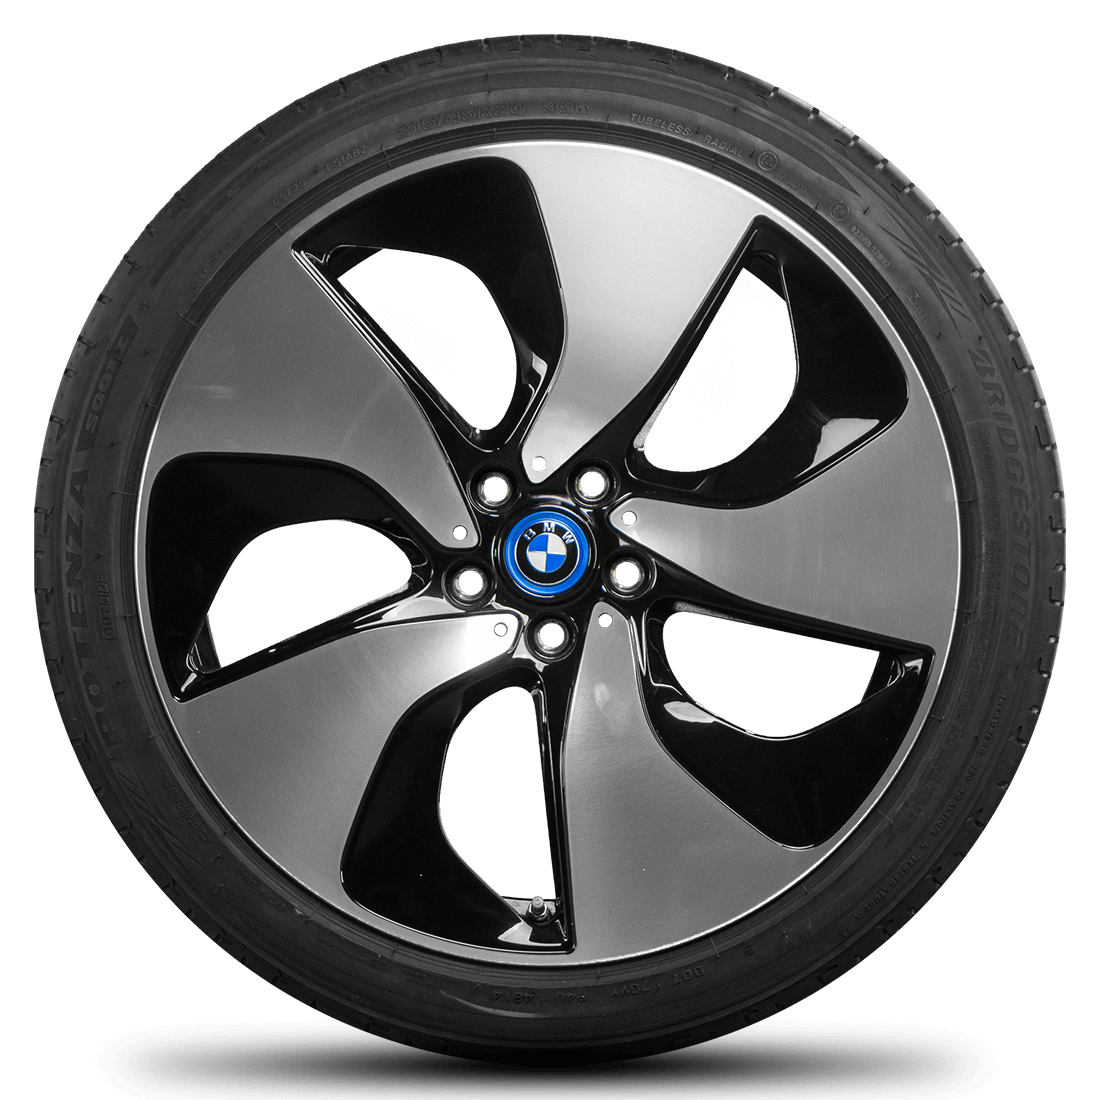 Bmw I8 20 Inch Rim Styling 444 Summer Tires Summer Wheels Alloy